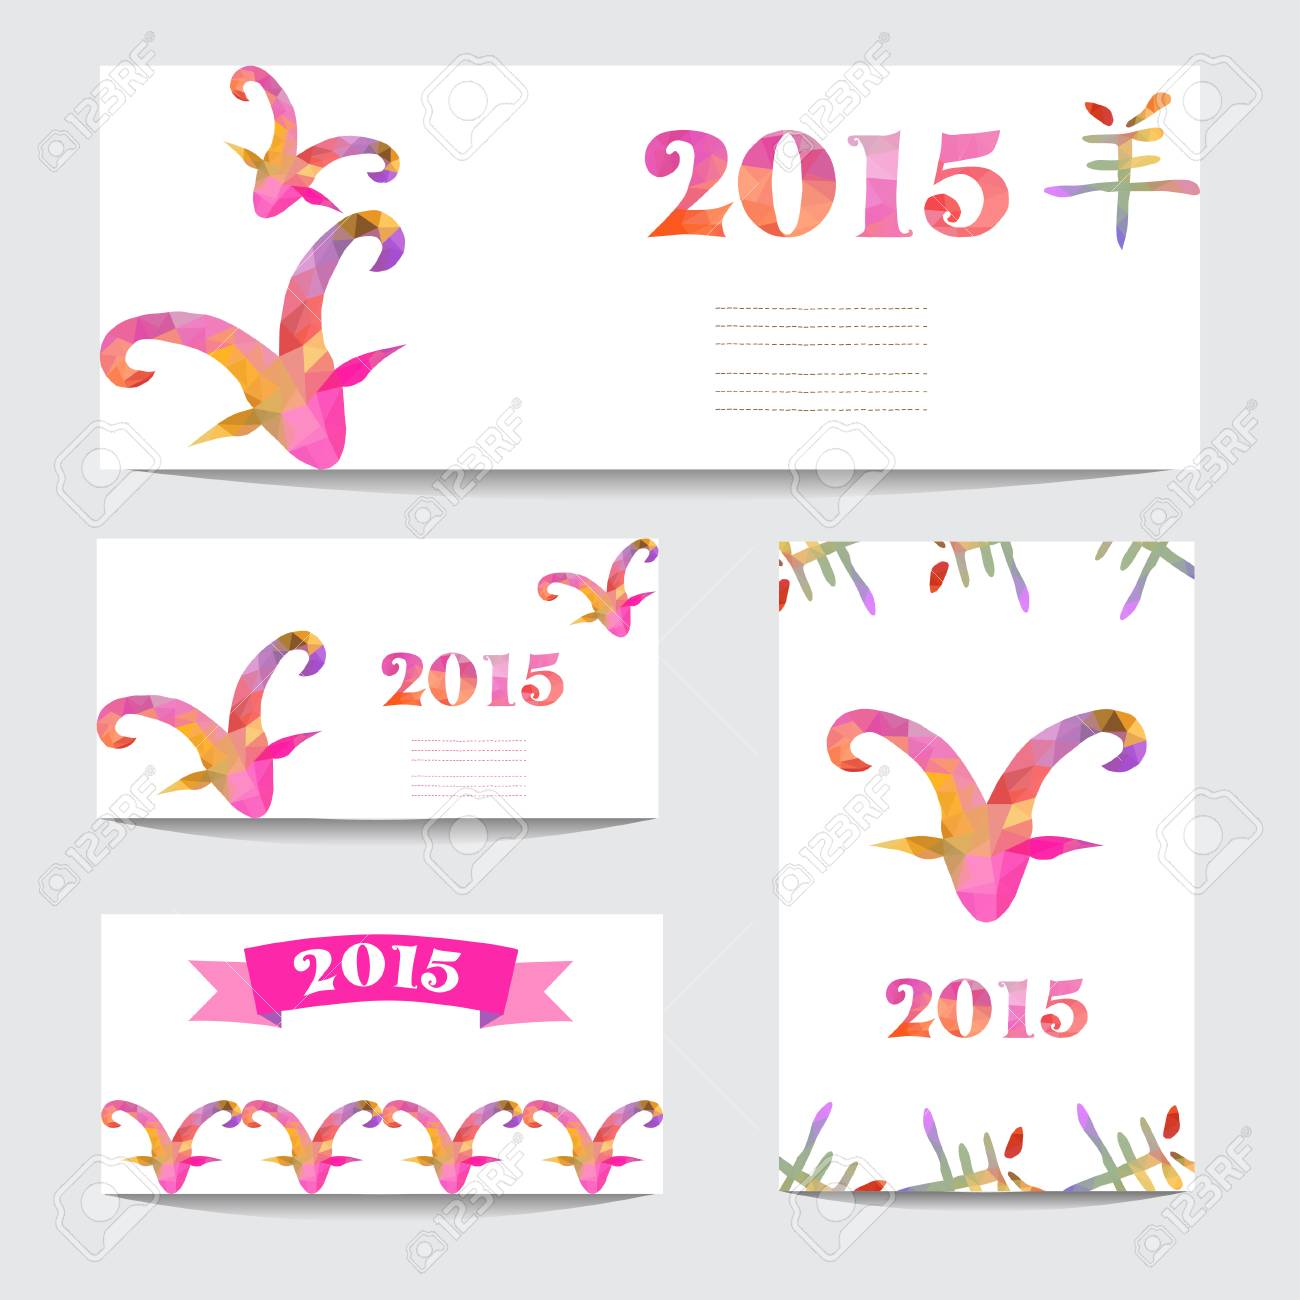 New year 2015 cards set with goat heads made by colorful geometric new year 2015 cards set with goat heads made by colorful geometric triangles chinese astrological m4hsunfo